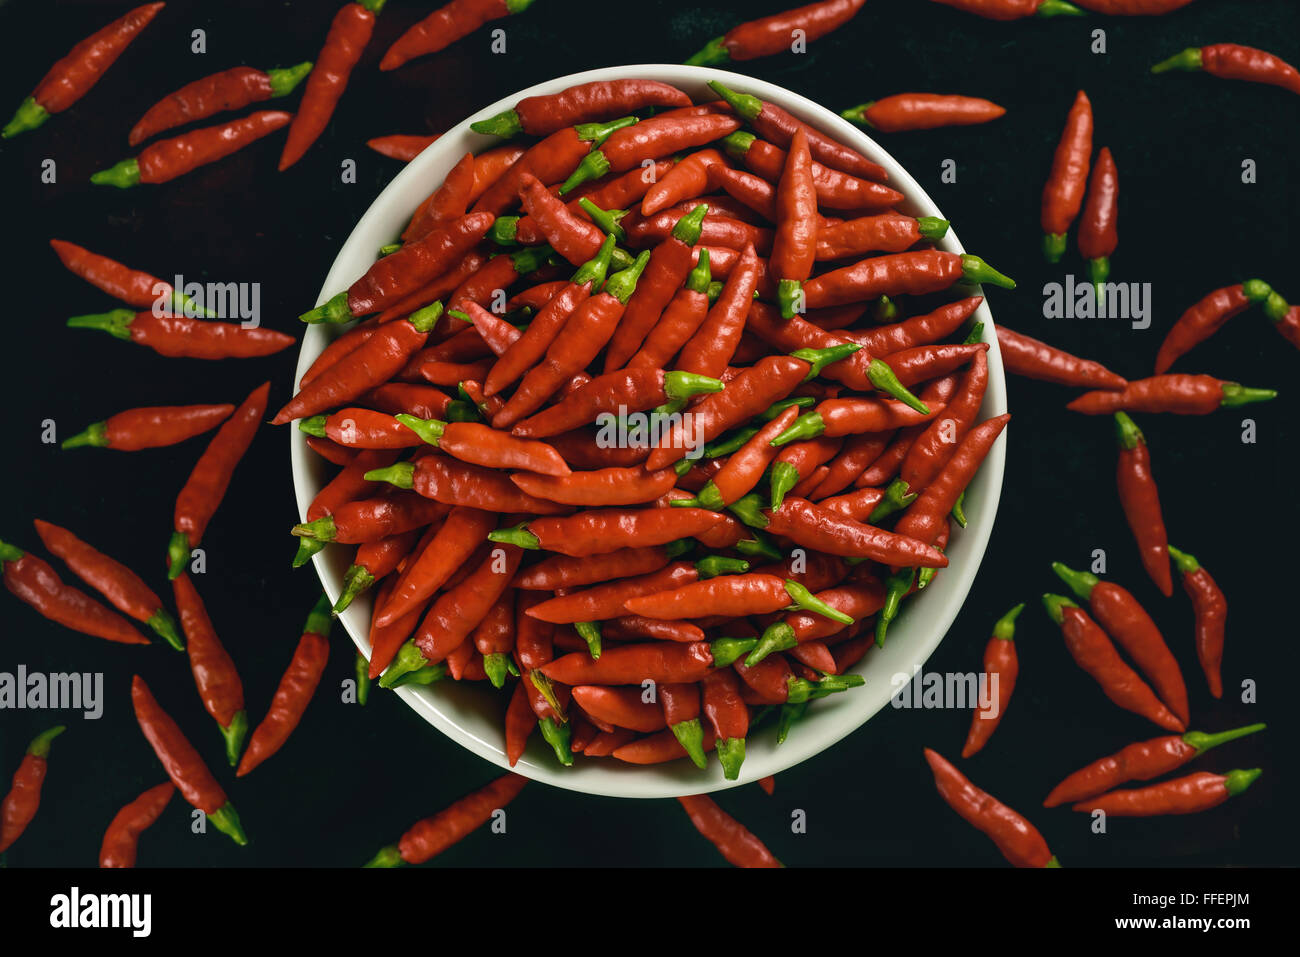 Red pepper in bowl on black background. - Stock Image